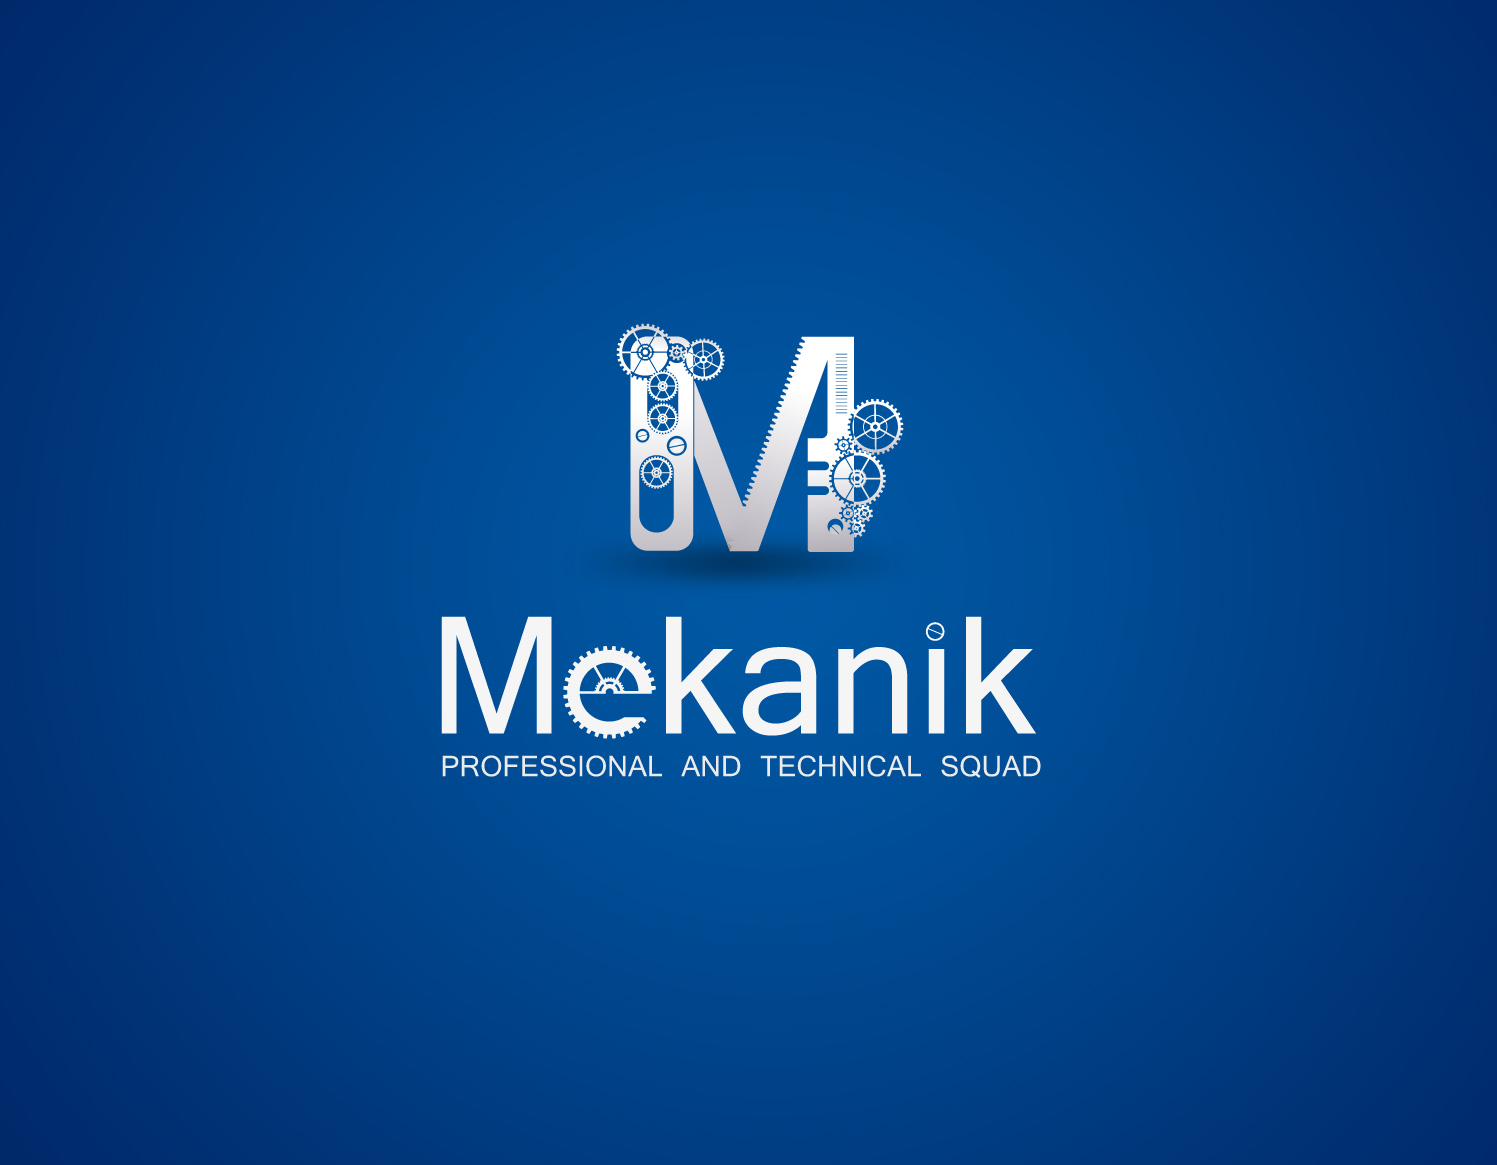 Logo Design by Mark Anthony Moreto Jordan - Entry No. 369 in the Logo Design Contest Creative Logo Design for MËKANIC - Professional and technical squad.